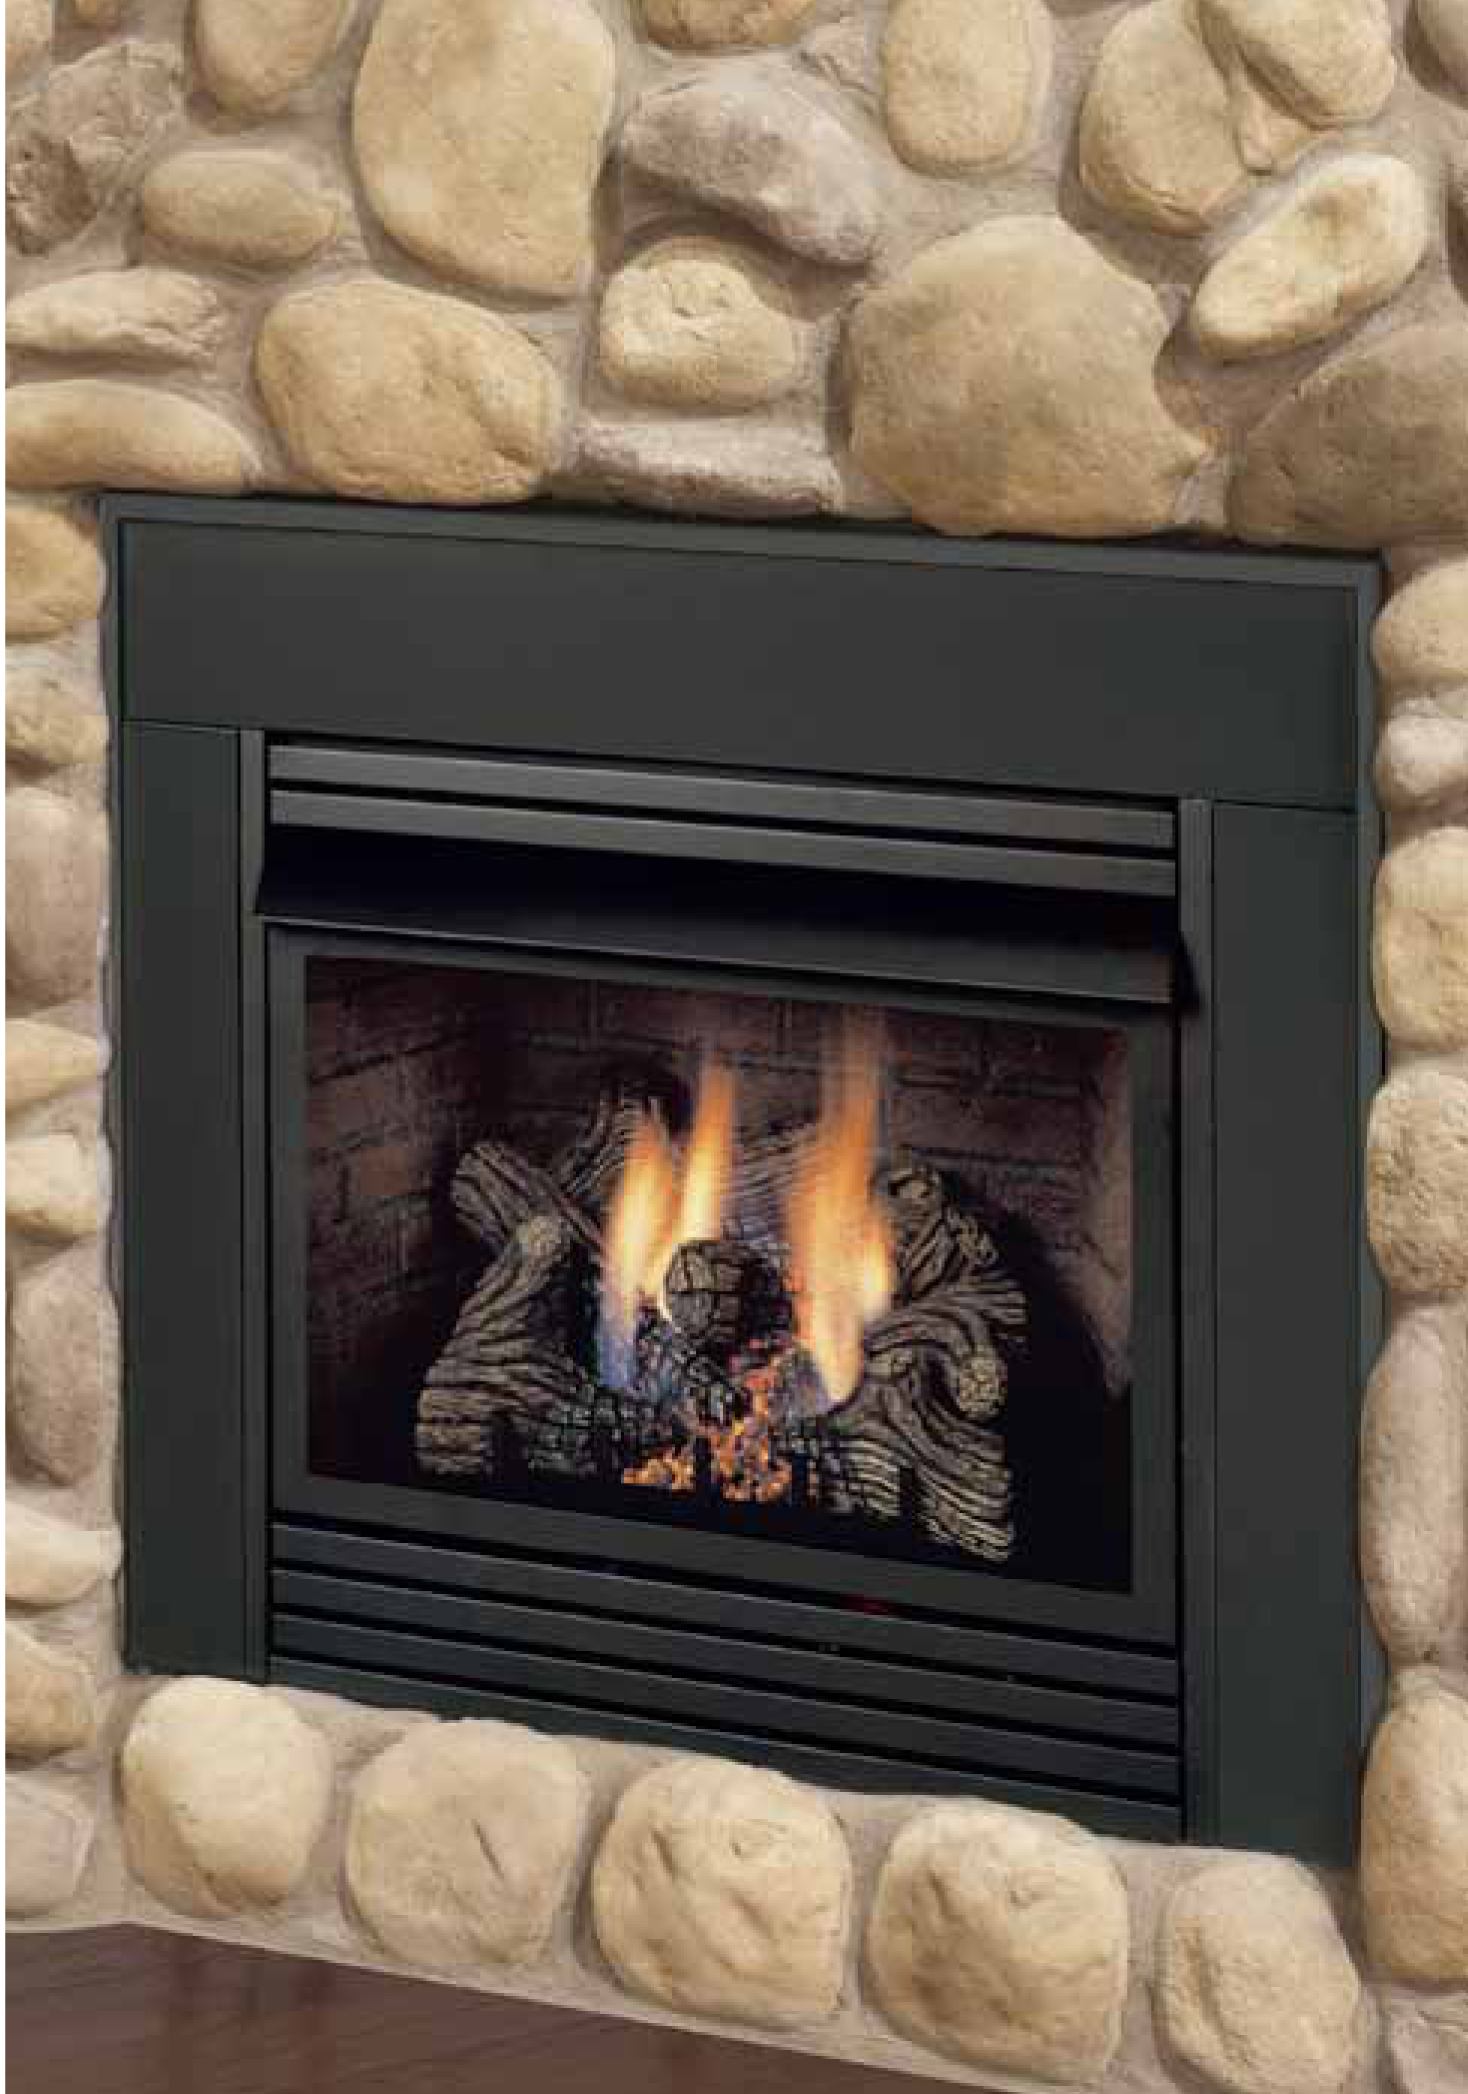 Wall Mounted Natural Gas Fireplace Luxury Recreational Warehouse Ventless Logs Ventless Fireplaces